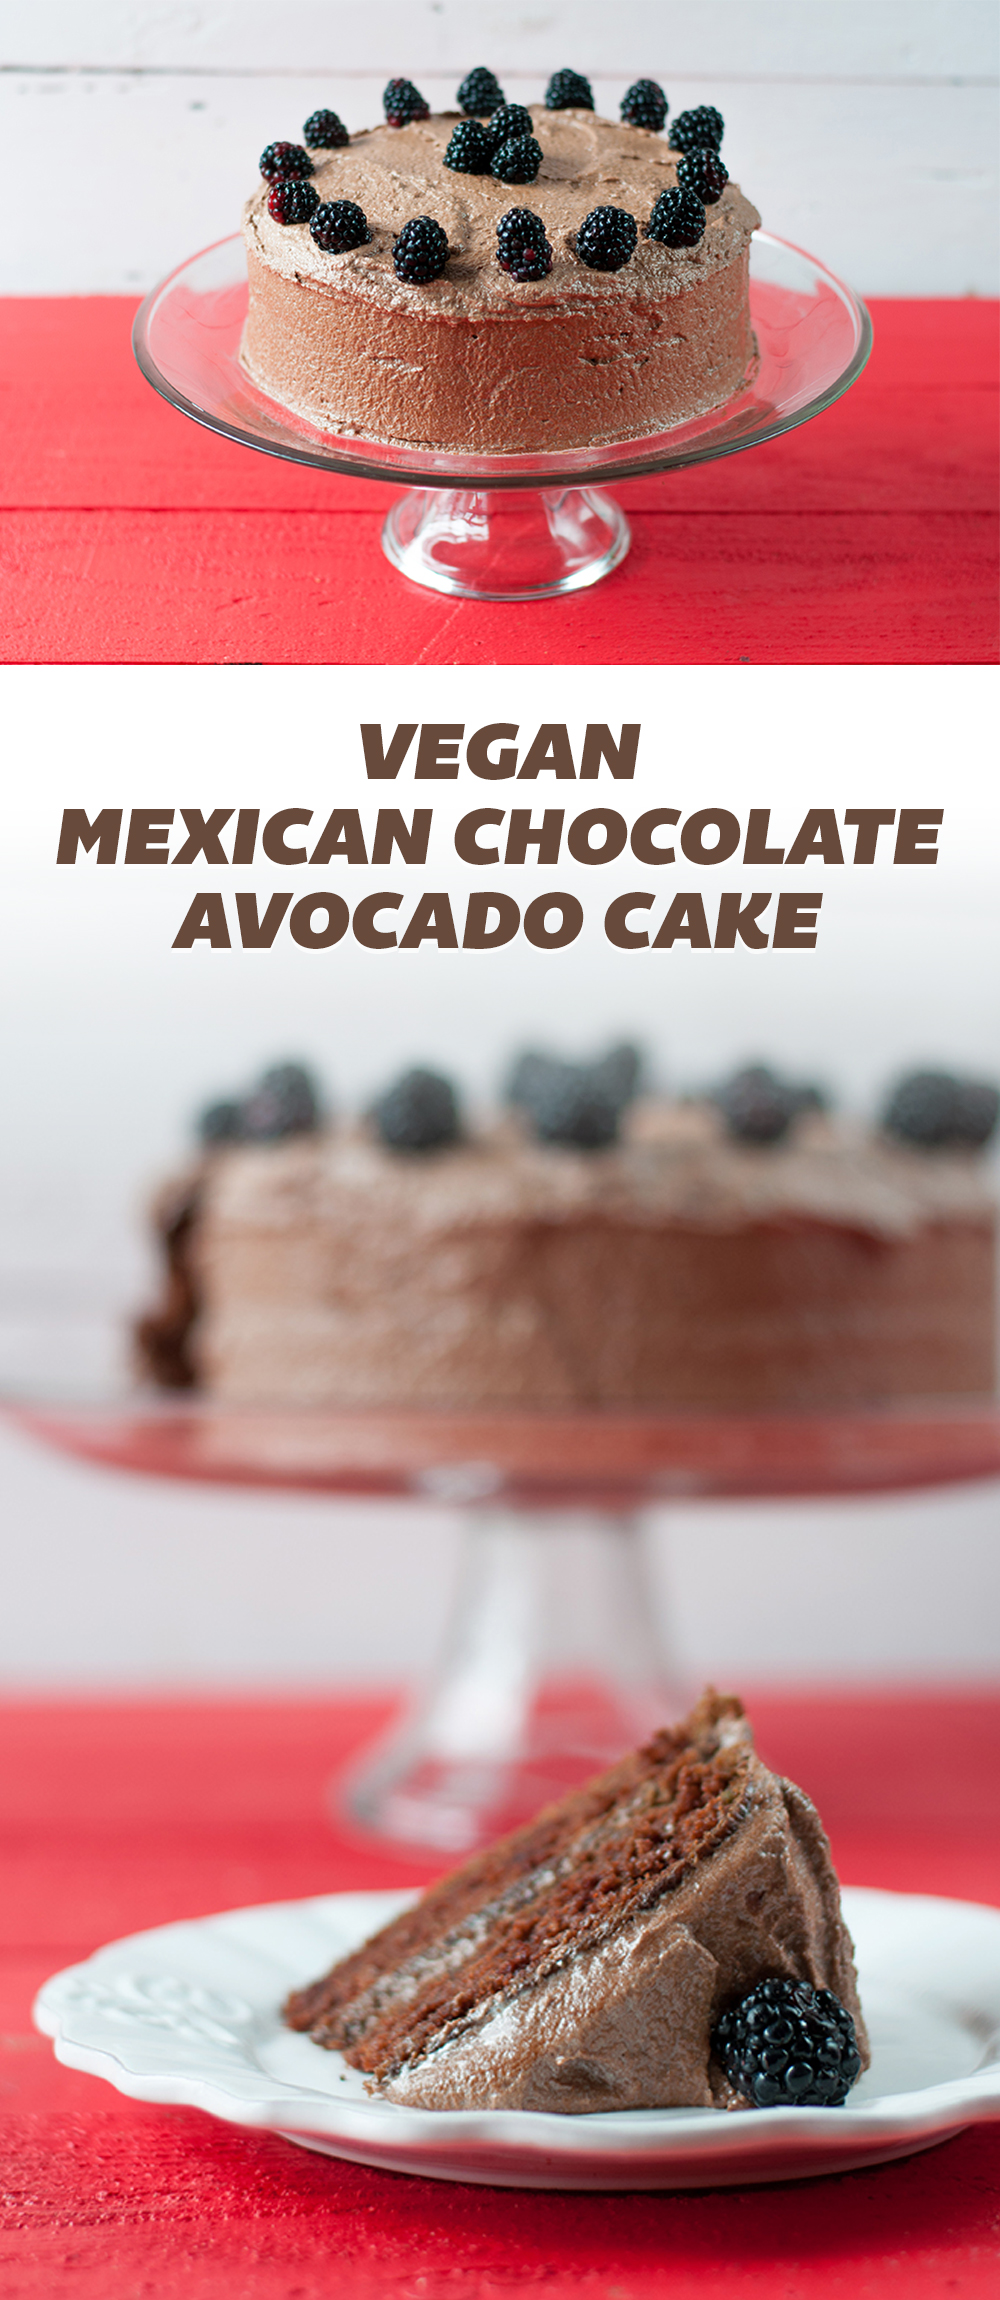 Vegan Mexican Chocolate Avocado Cake with a chocolate buttercream frosting. This moist, tender cake is perfect for any occasion. #vegan #cake